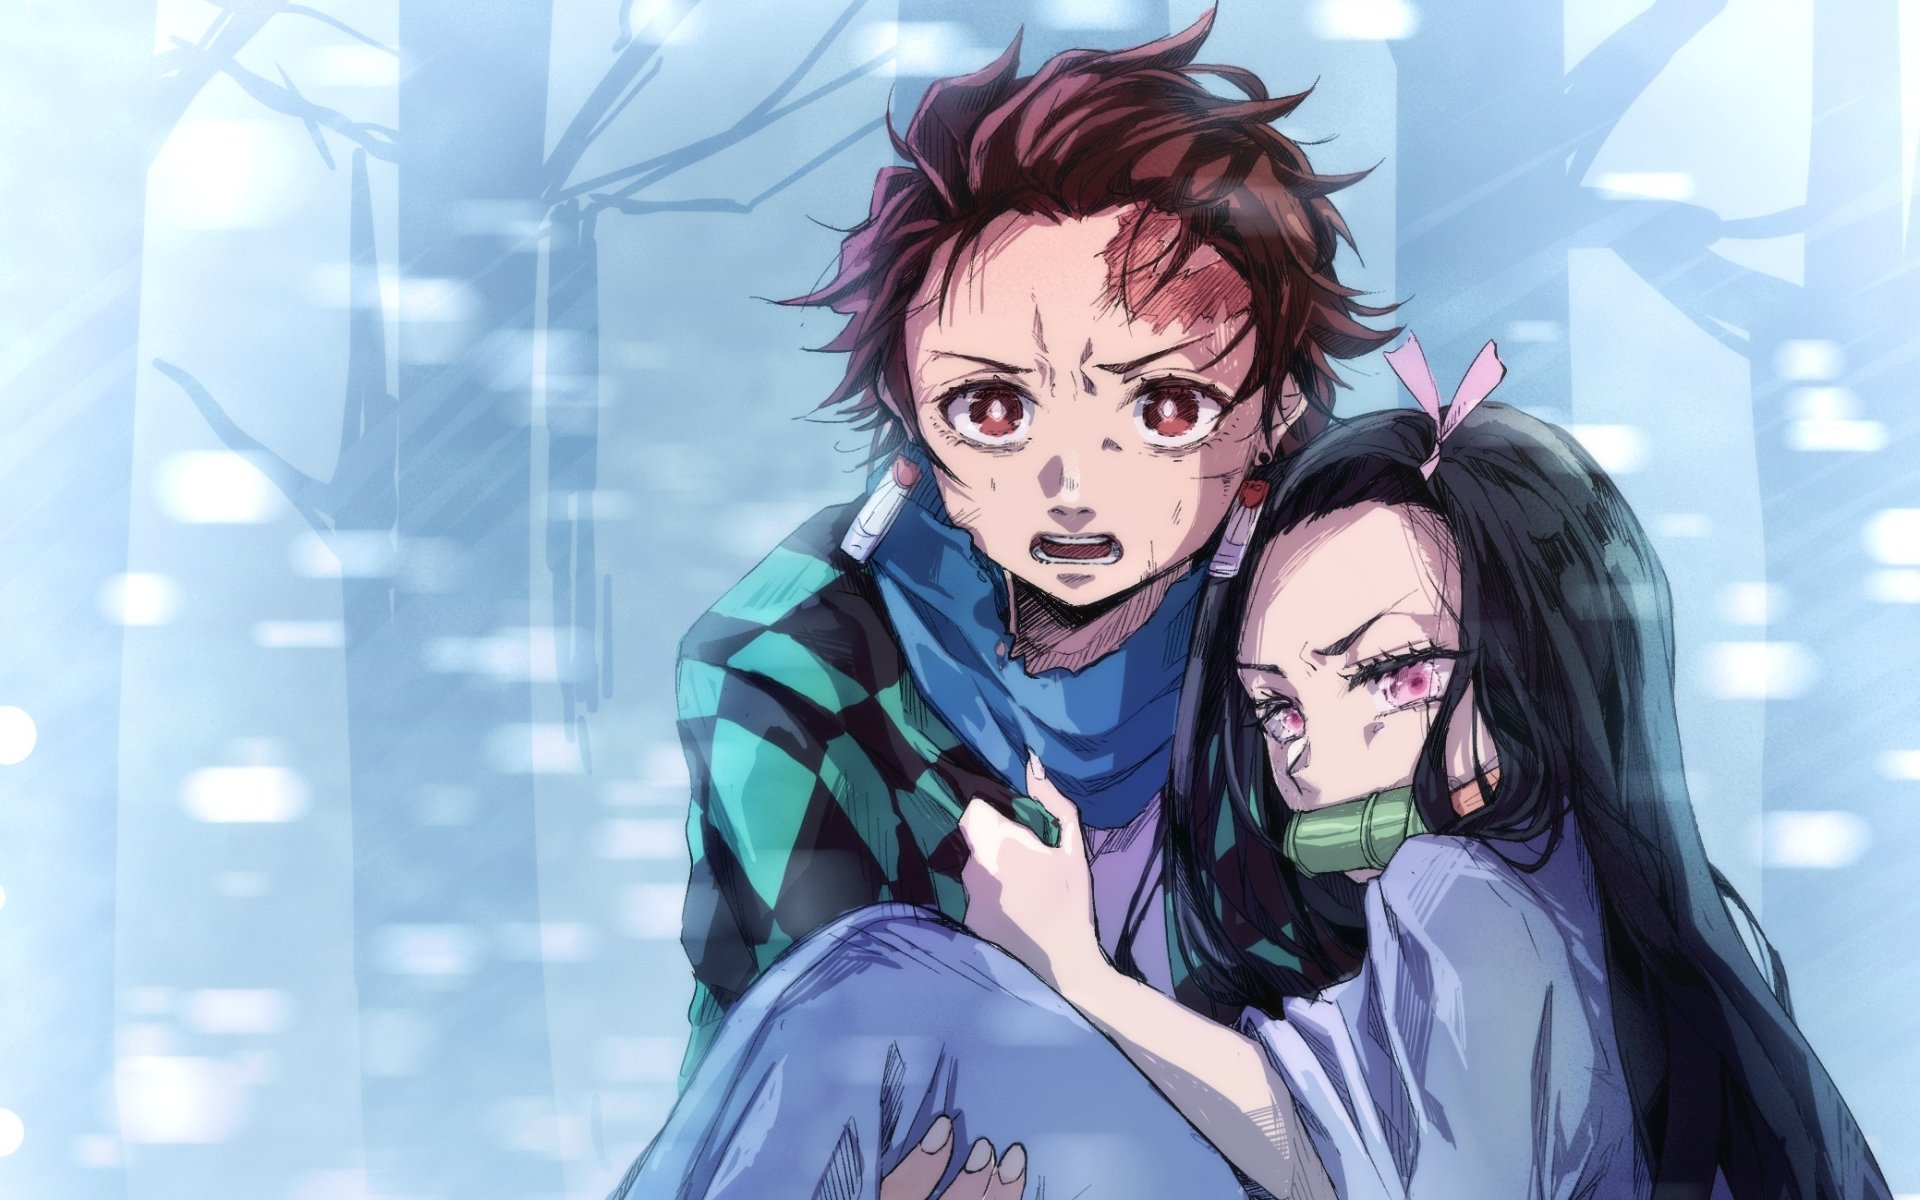 Wallpapers of Anime, Demon Slayer, Nezuko Kamado, Tanjirou backgrounds